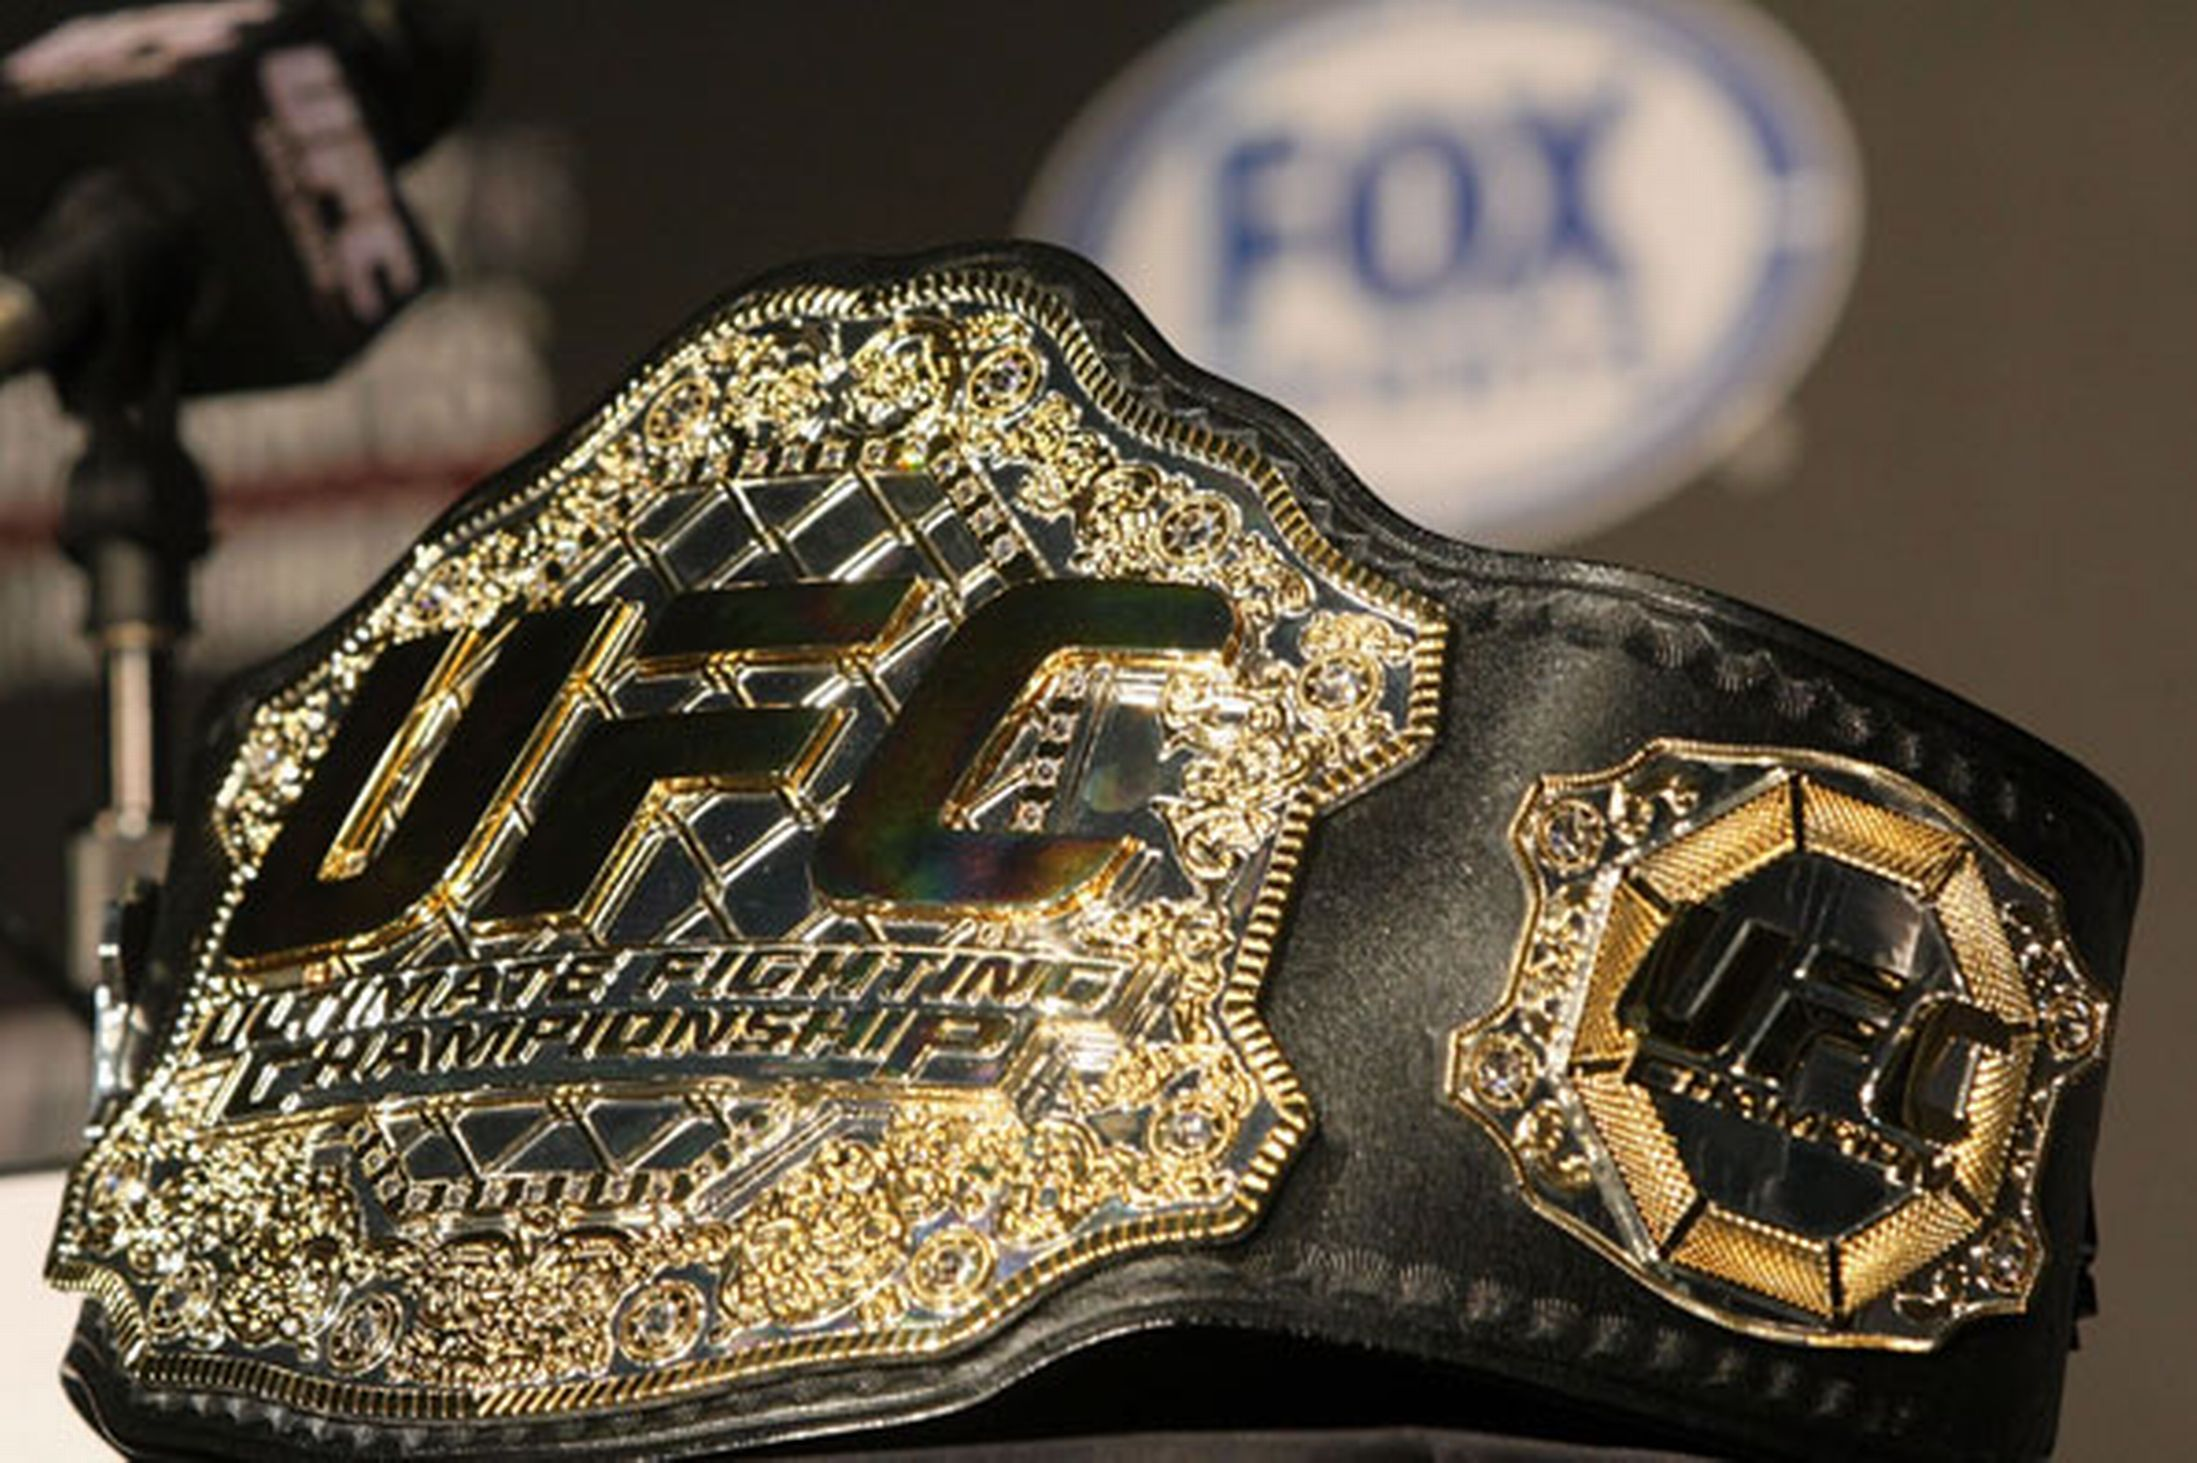 ufc-heavyweight-championship-belt-505501000